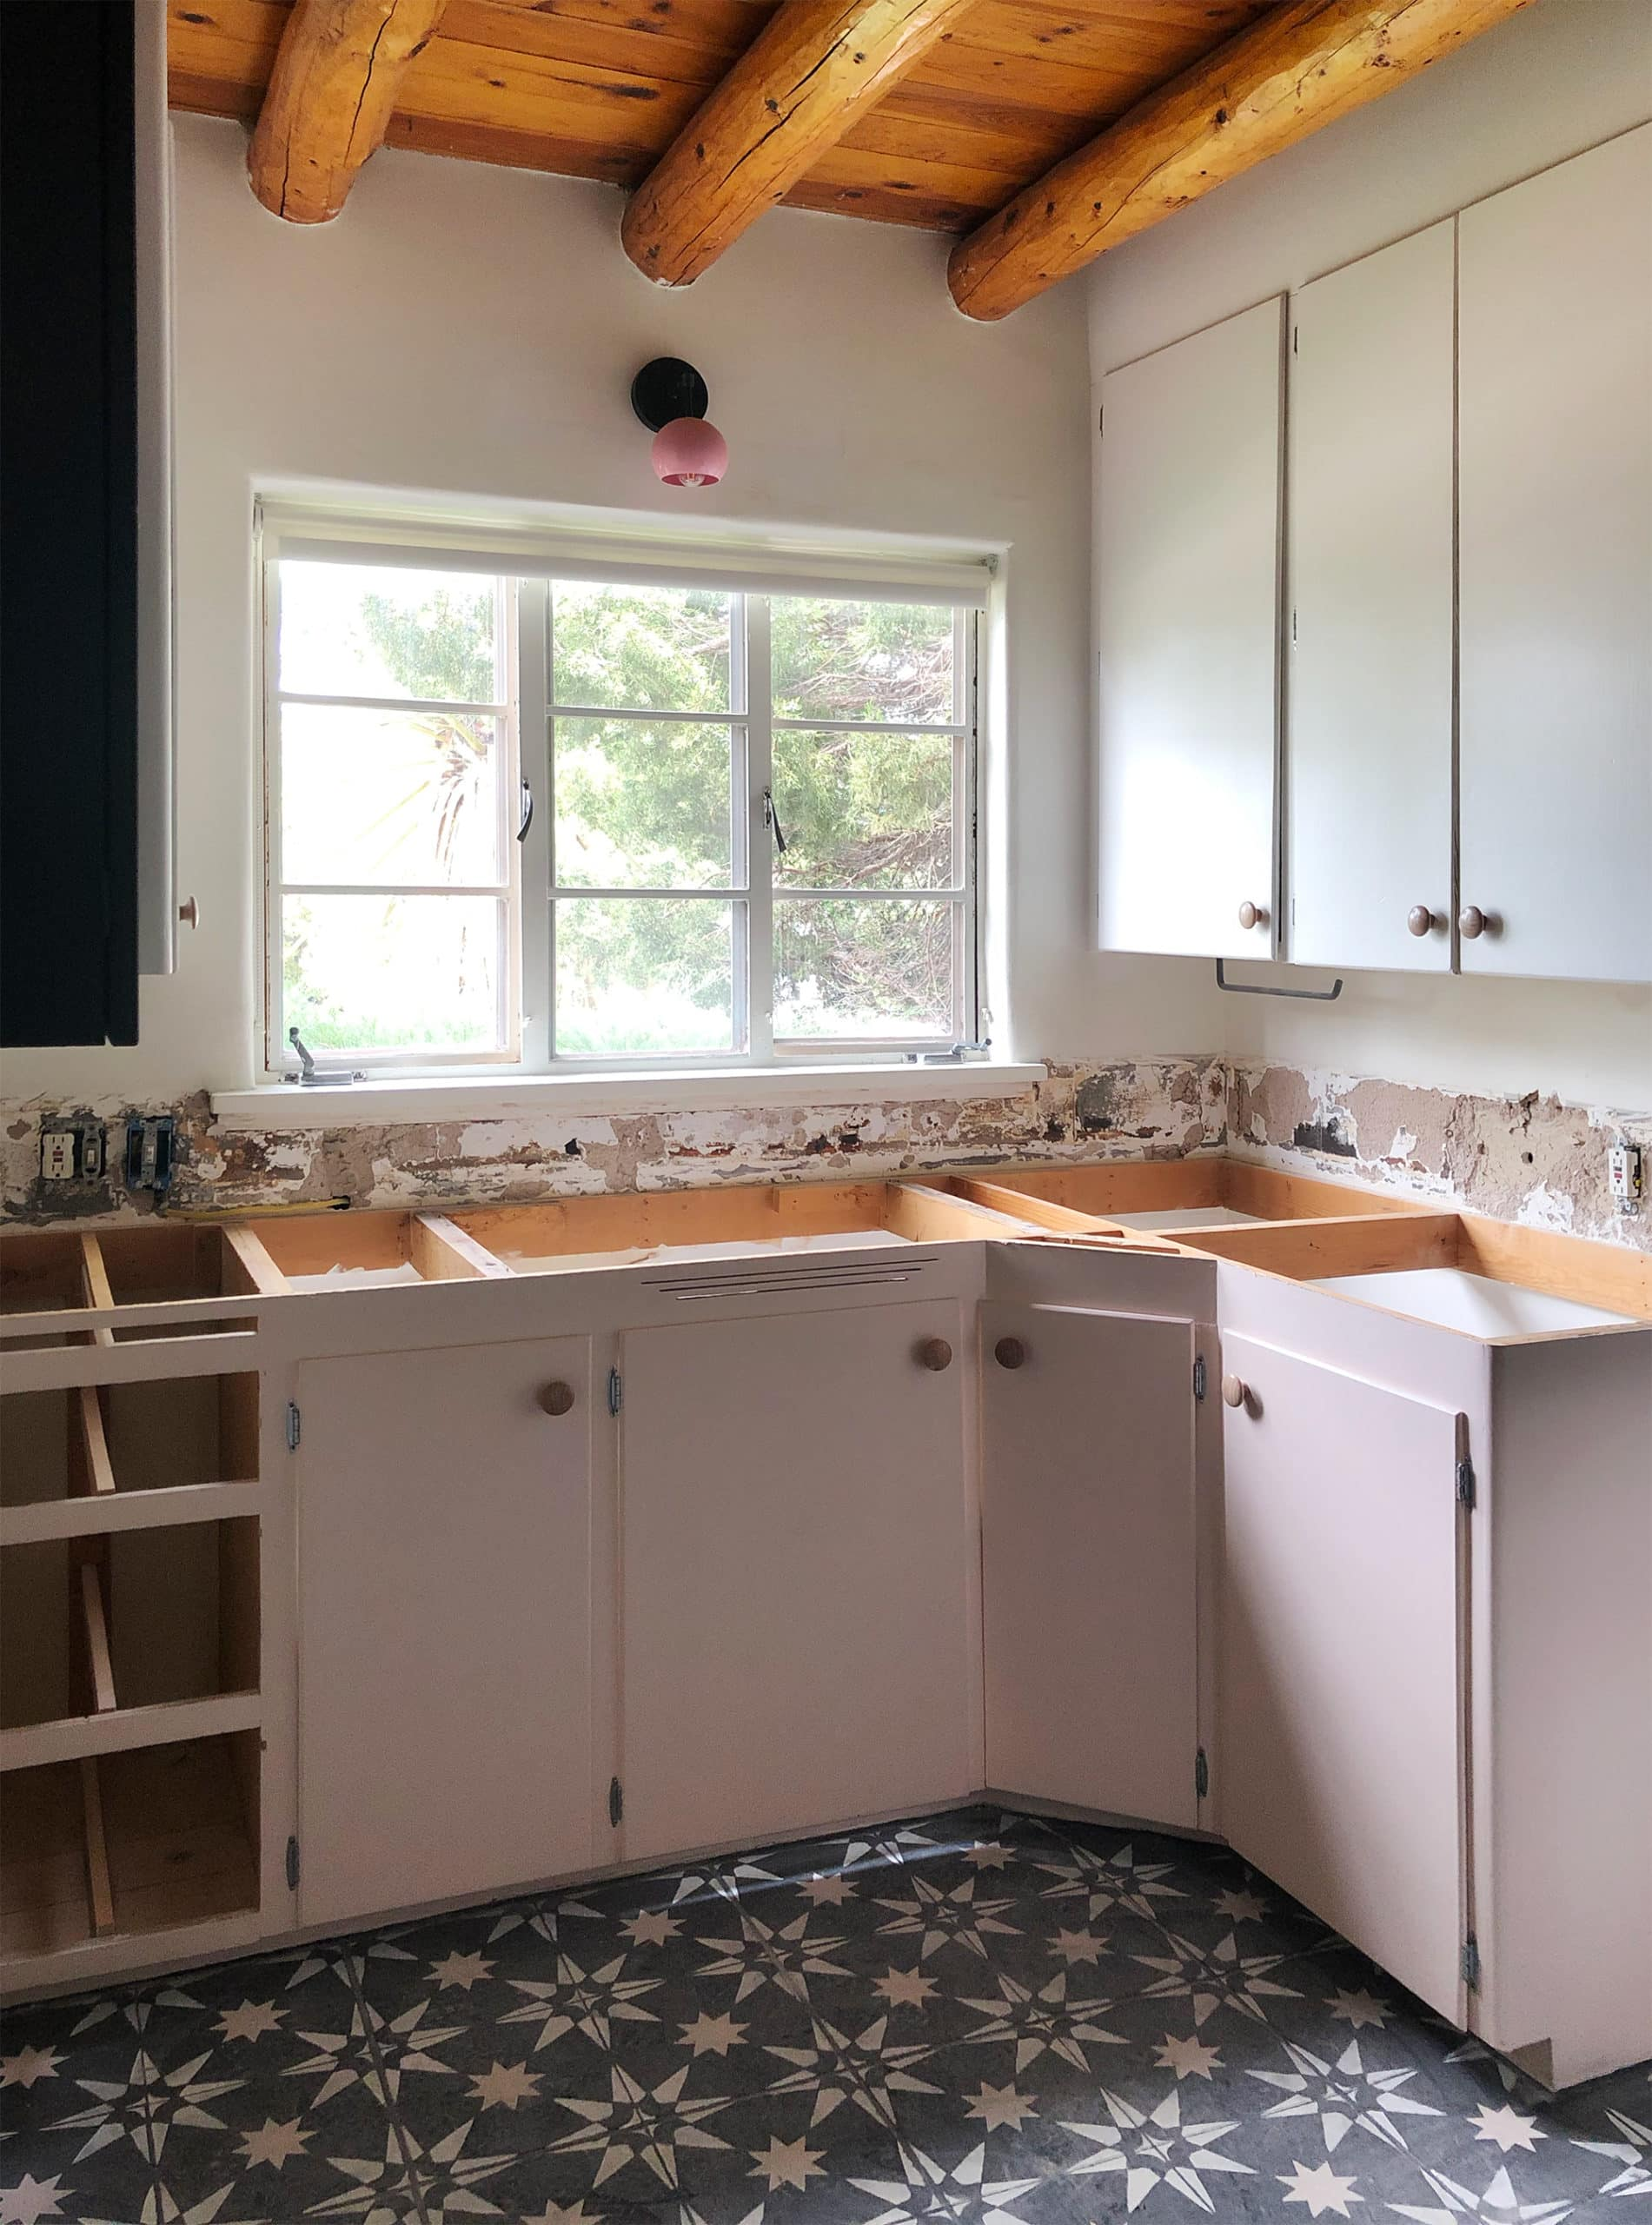 Countertop demolition - doorsixteen.com